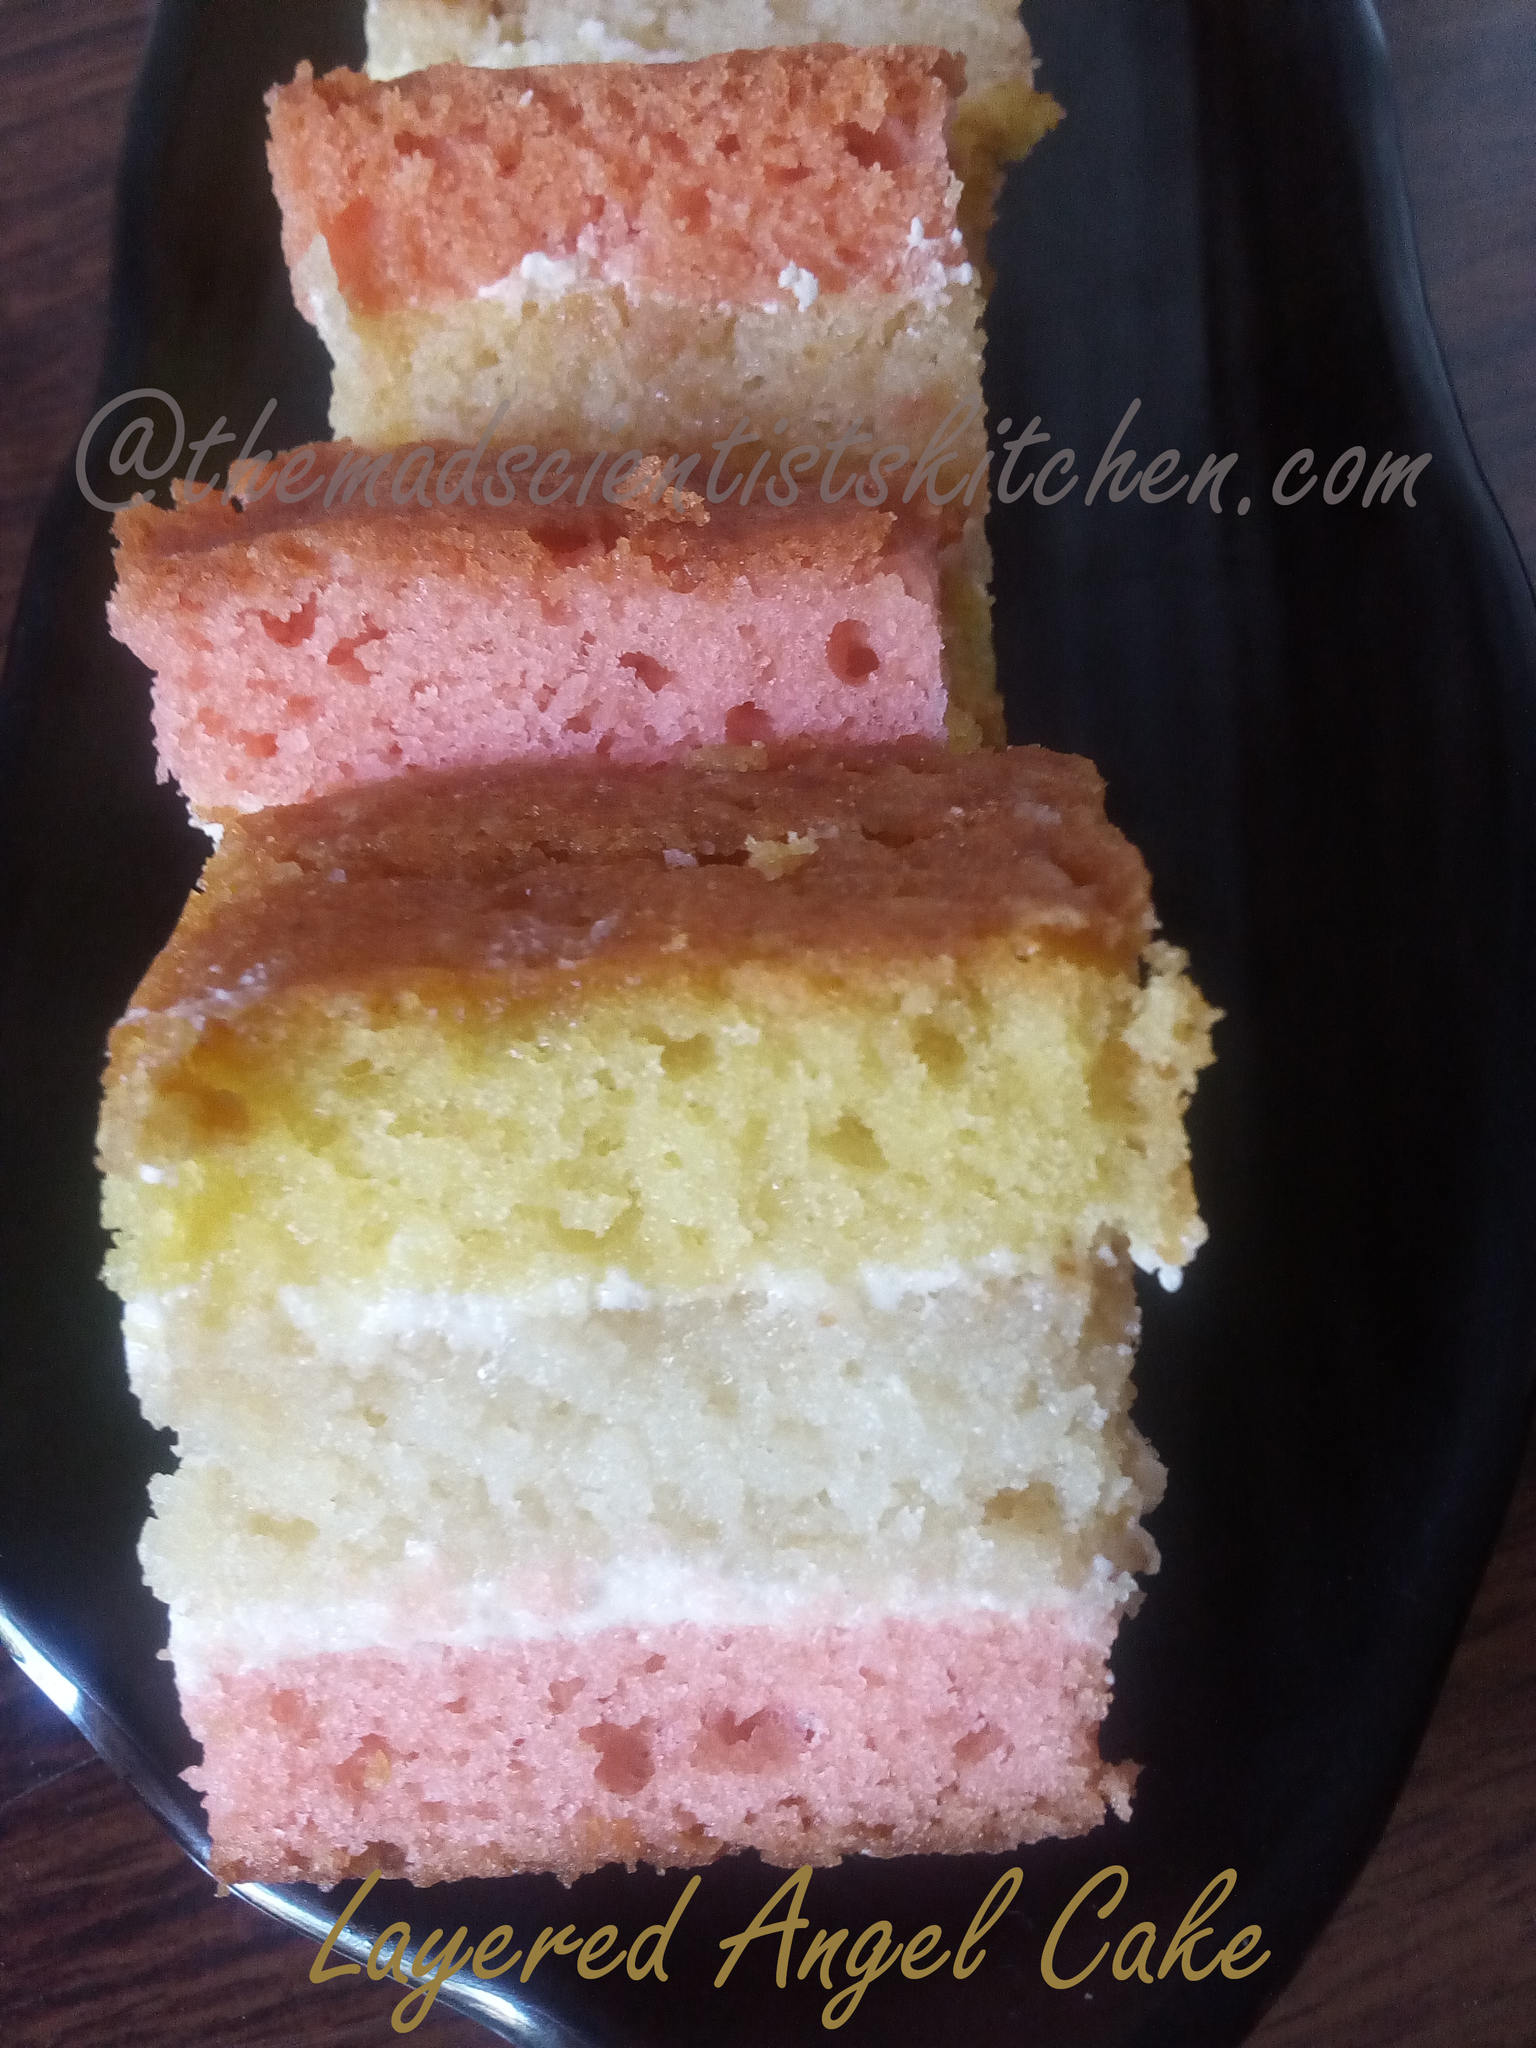 Layered Angel Cake the British Version